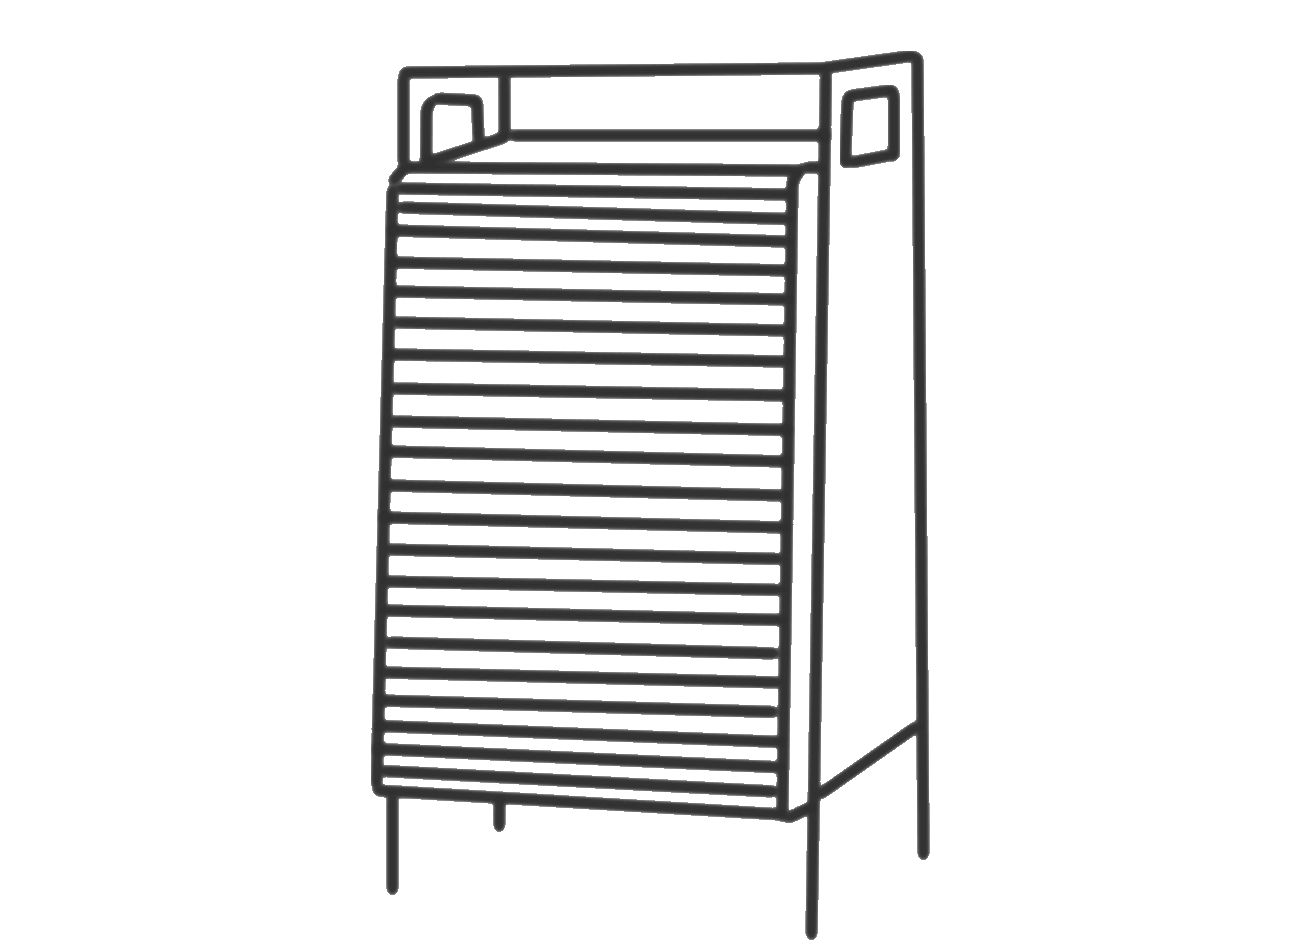 armoire.png